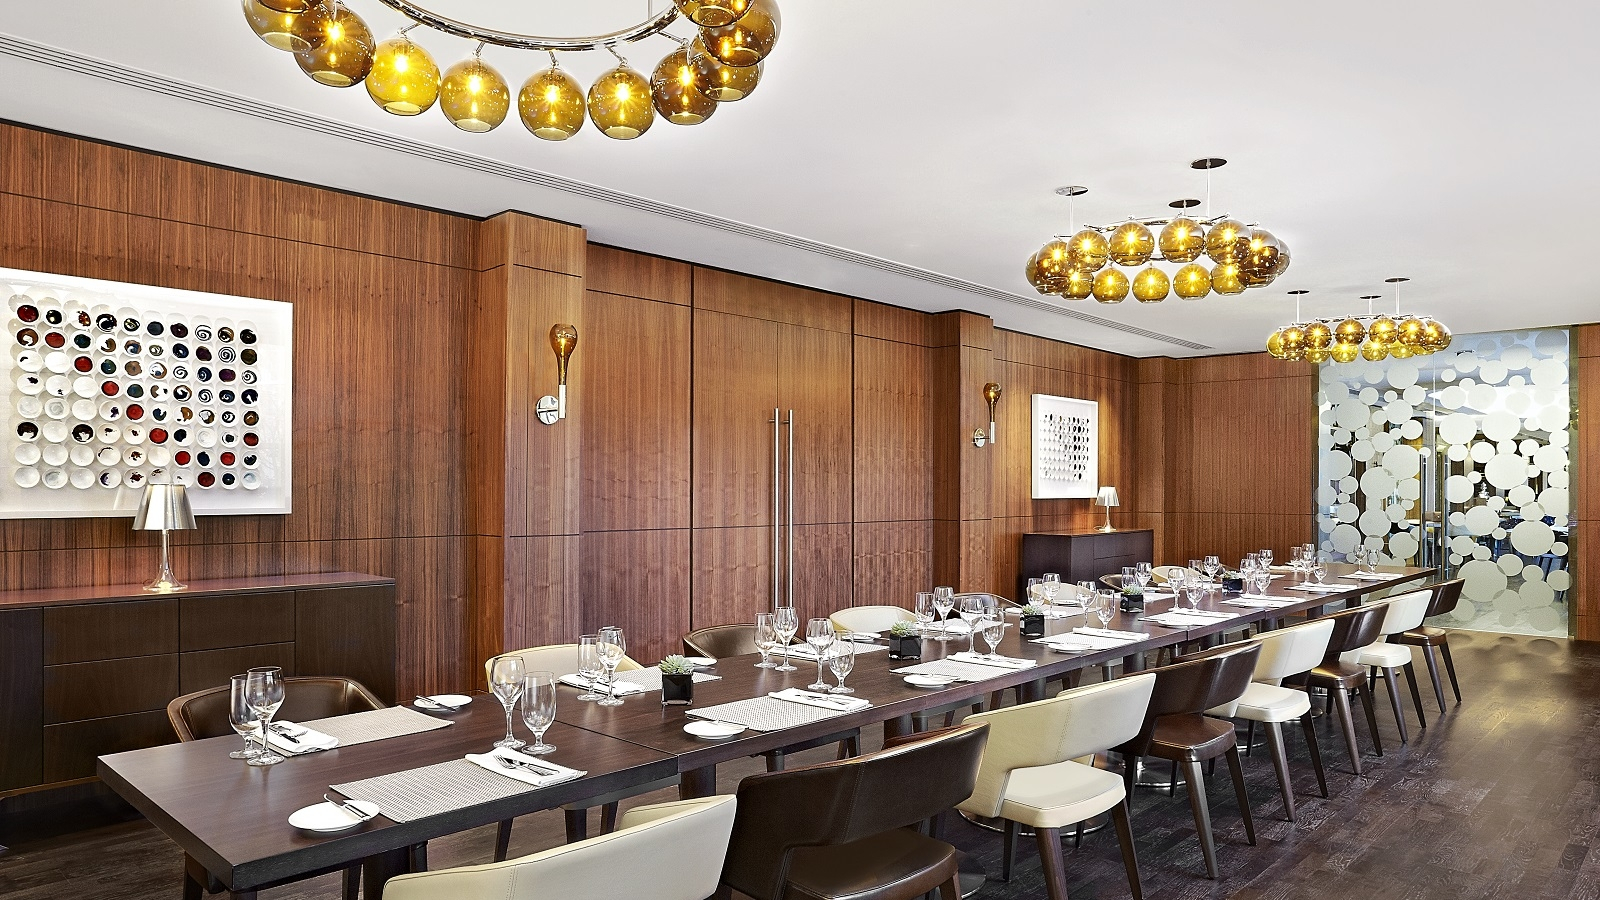 Modular One Square Edinburgh | Private Dining Room intended for The Dining Room Edinburgh